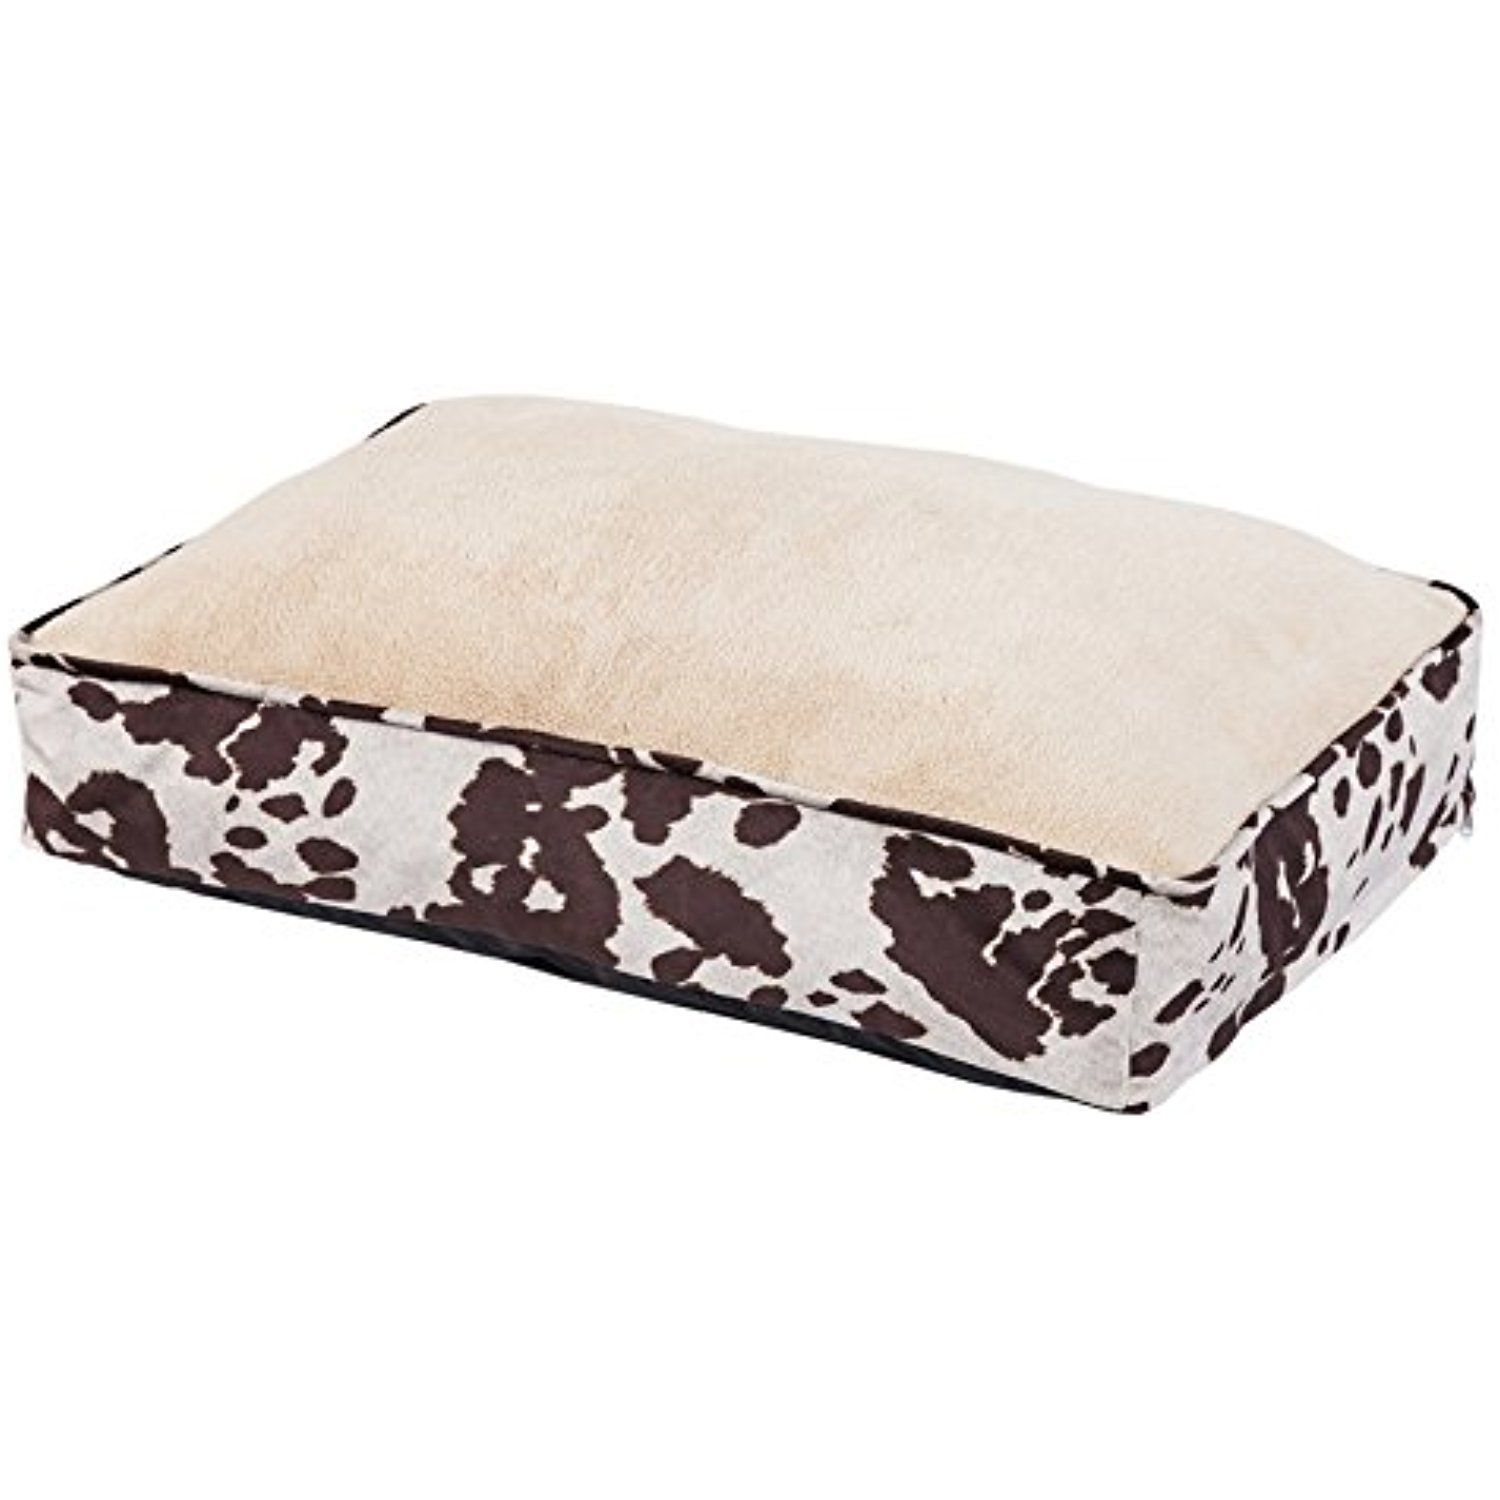 HiEnd Accents DB3067 Cowhide Pattern Dog Bed, Multicolor